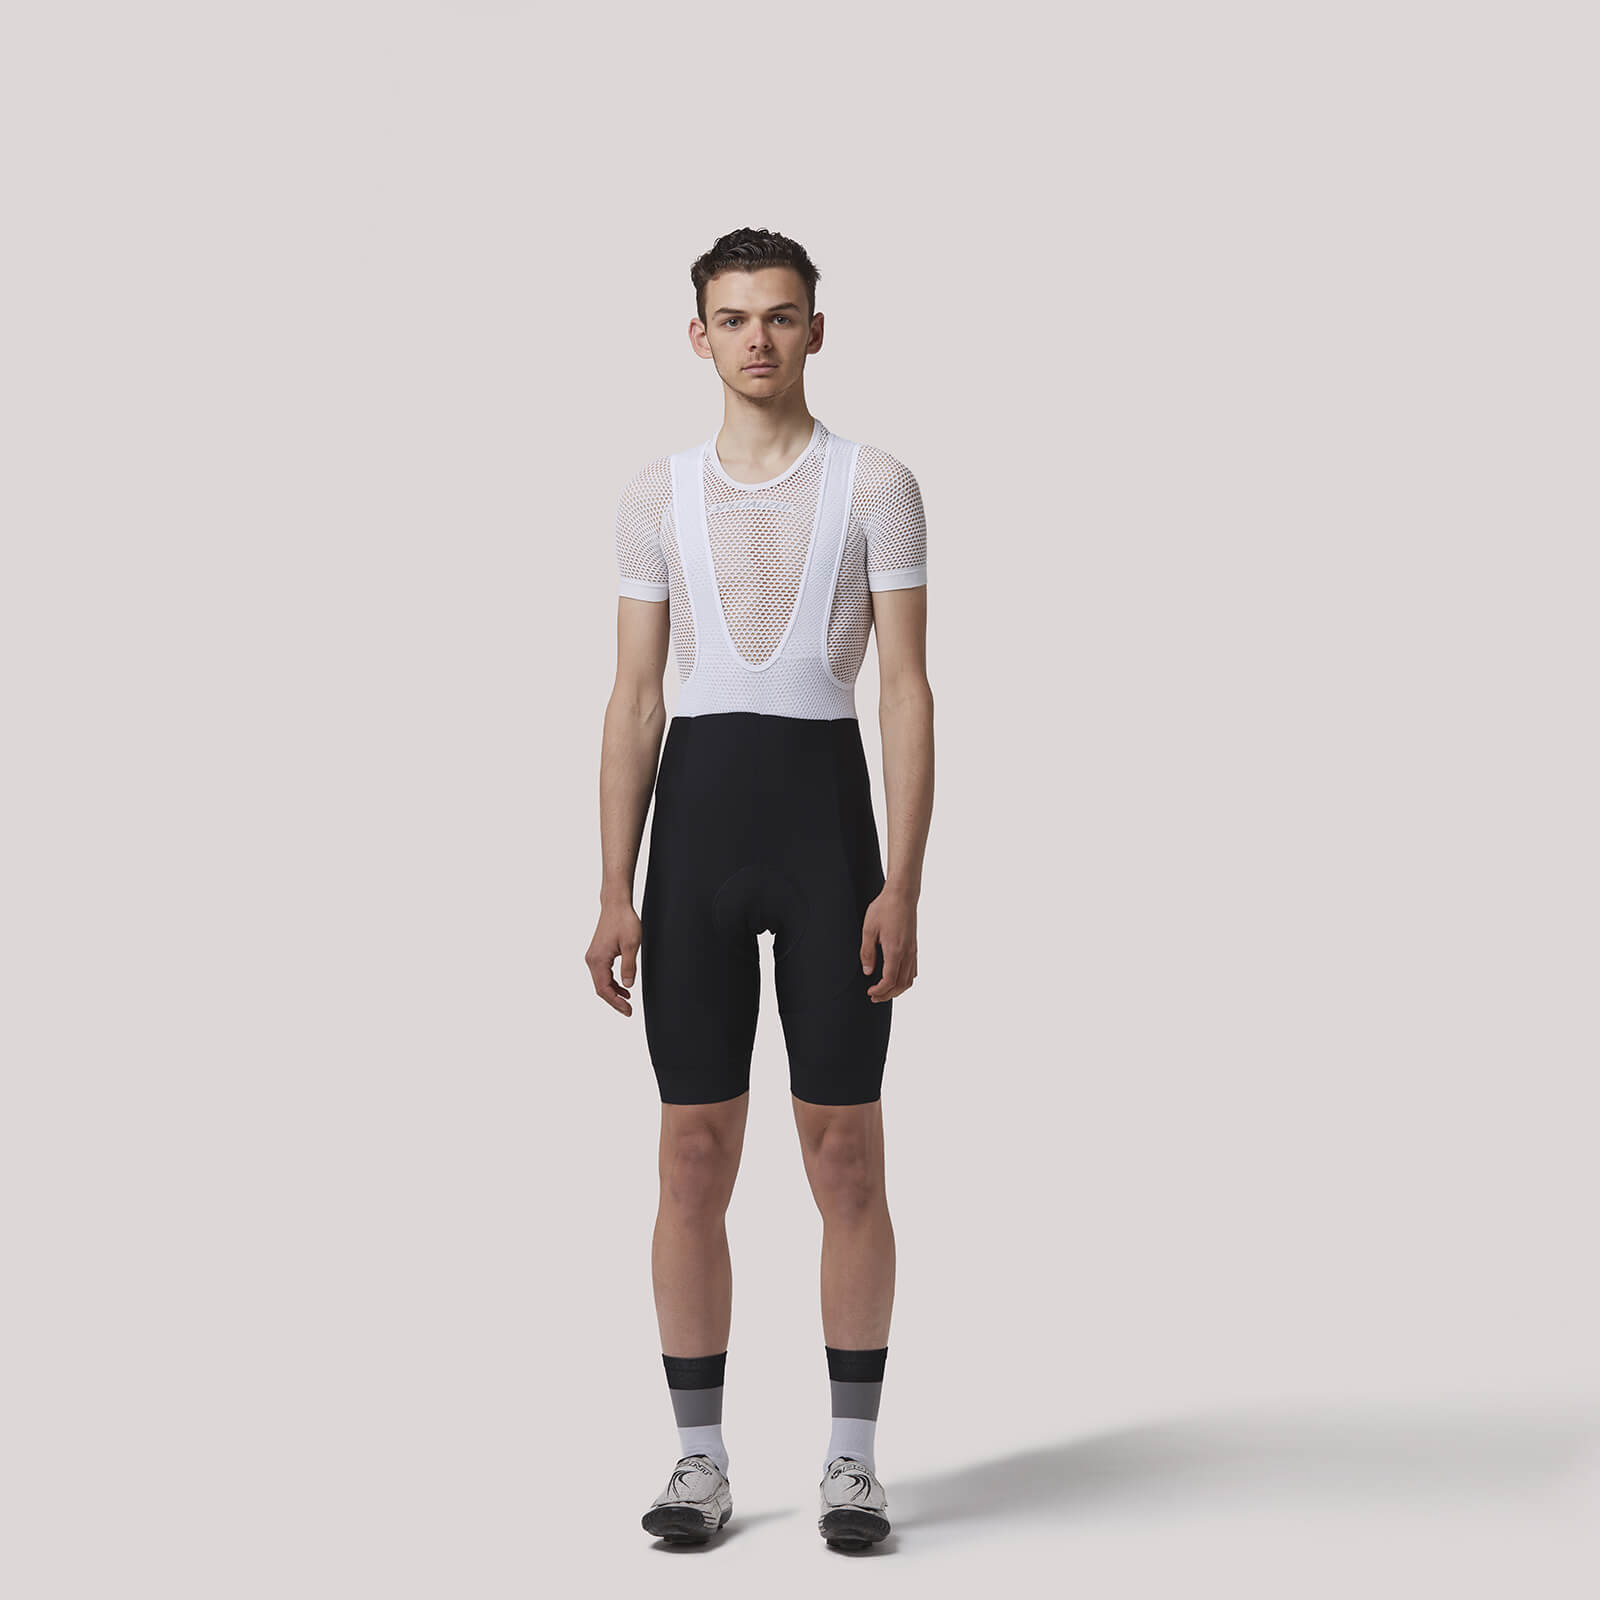 PBK Altitude Bib Shorts - Black